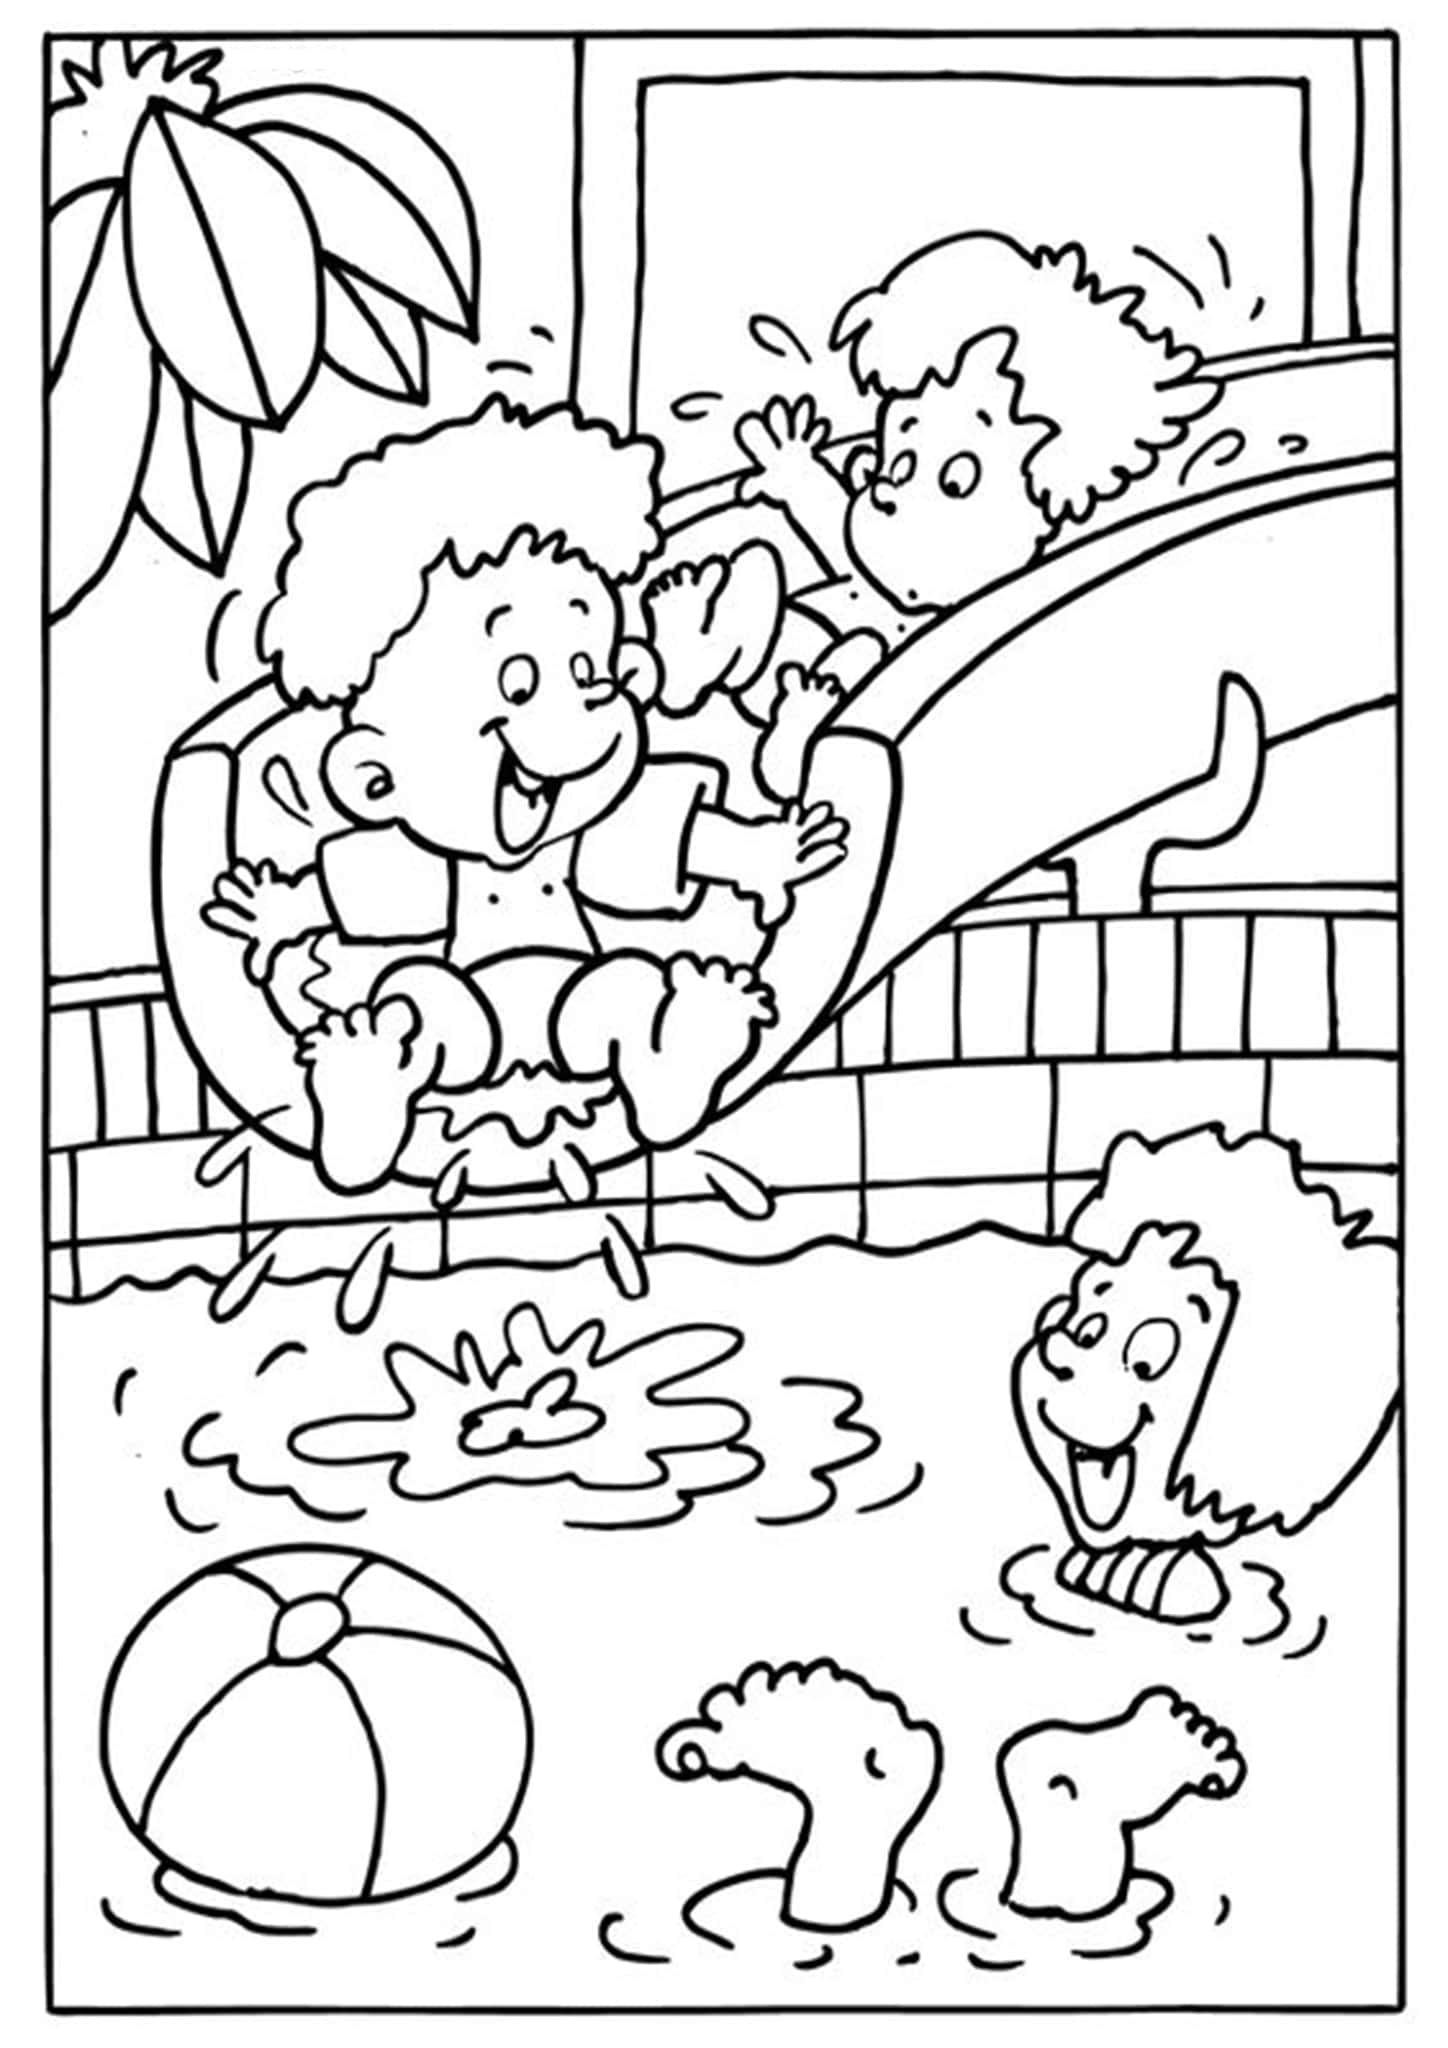 Free Easy To Print Summer Coloring Pages Summer Coloring Pages Summer Coloring Sheets Coloring Pages